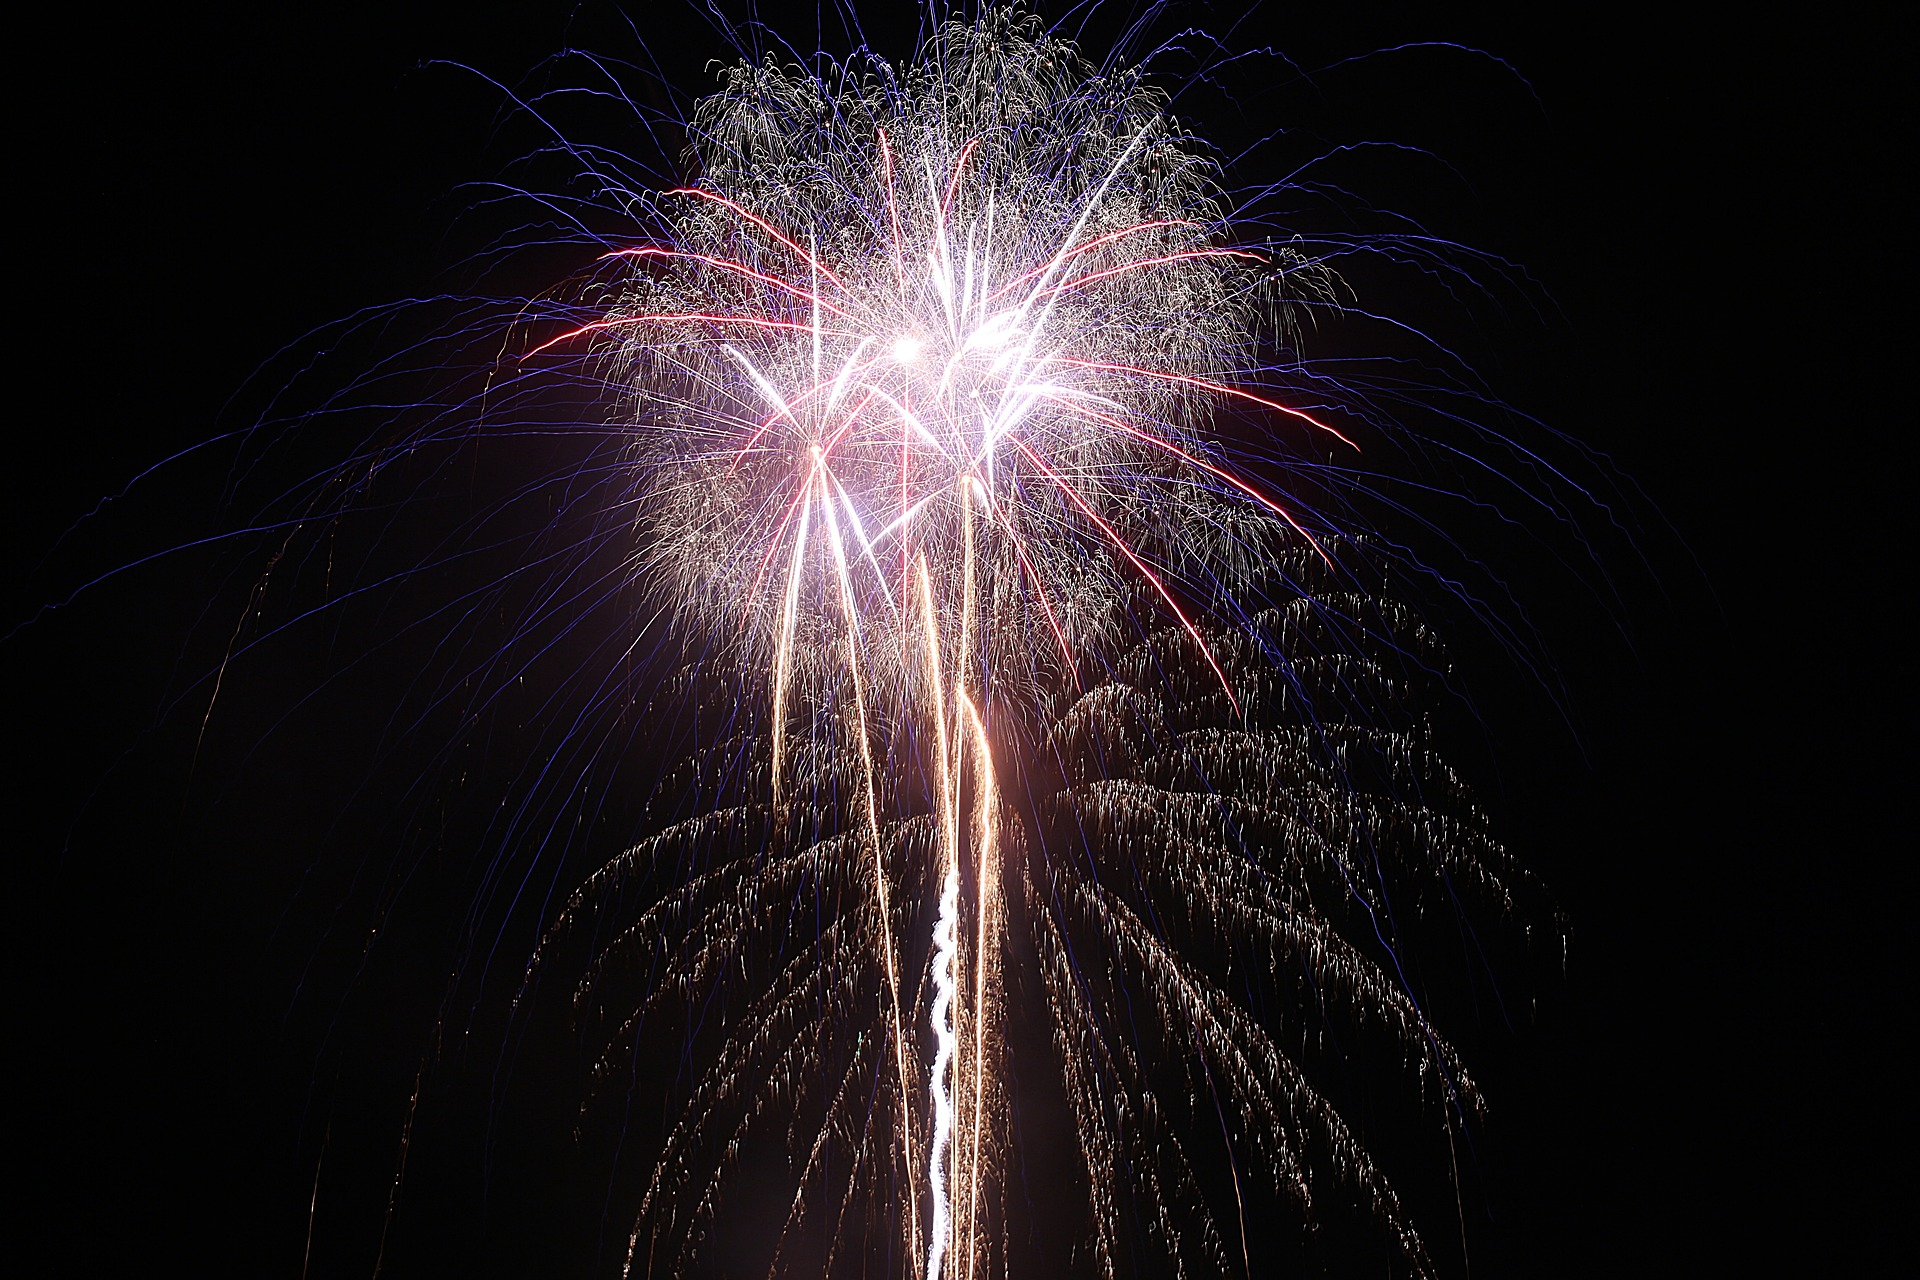 Fireworks, Bonfire, Celebrate, Celebration, Colorful, HQ Photo